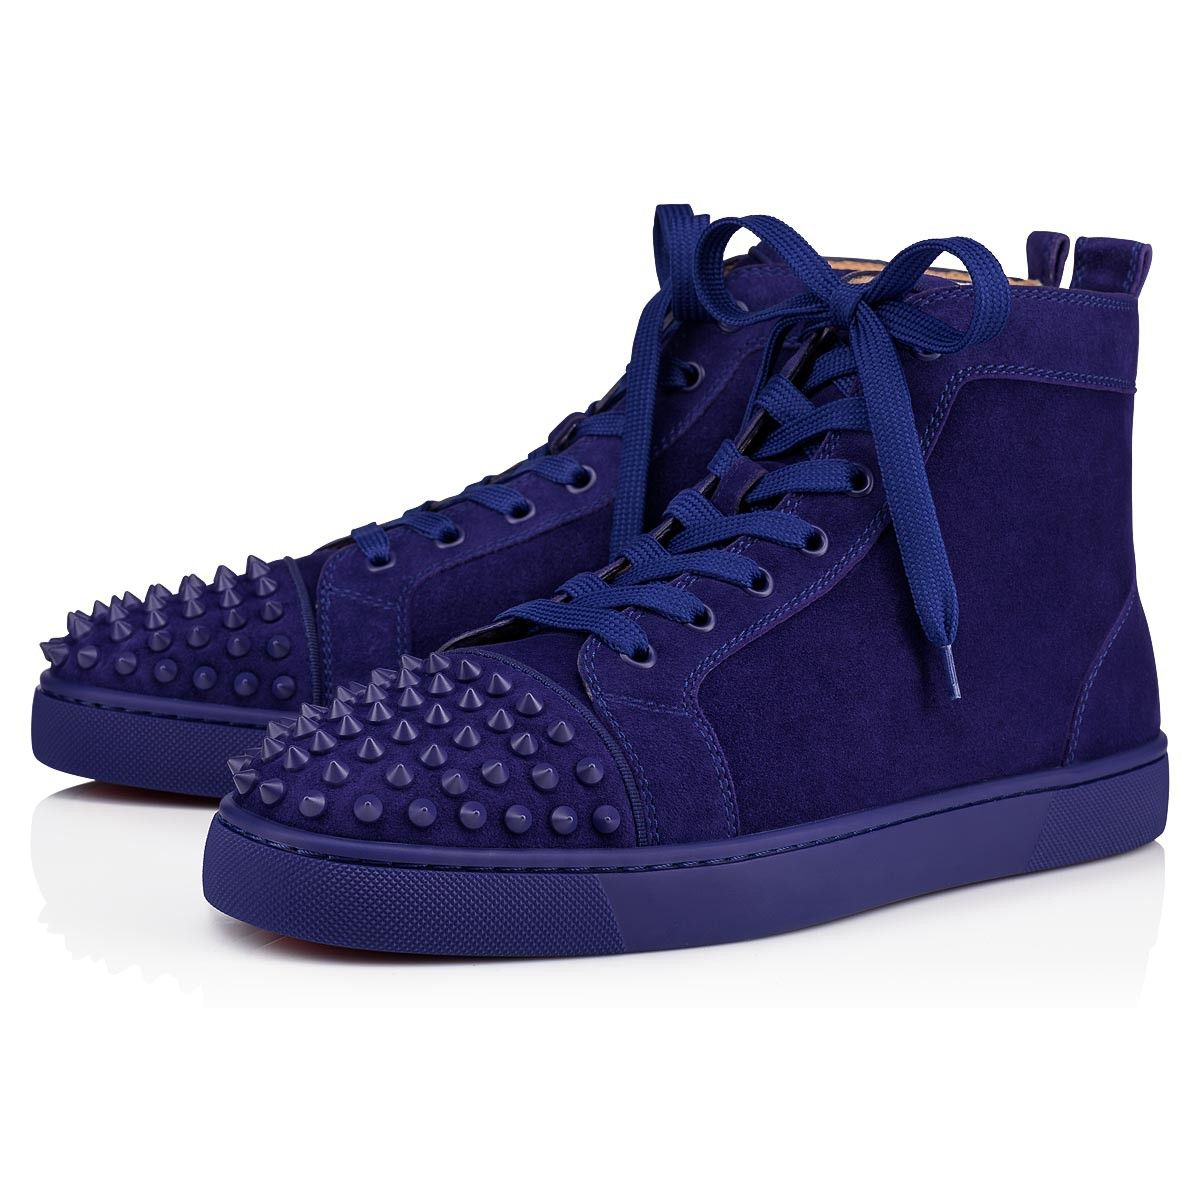 6ccd7657f7d CHRISTIAN LOUBOUTIN Lou Spikes Orlato Men s Flat.  christianlouboutin  shoes